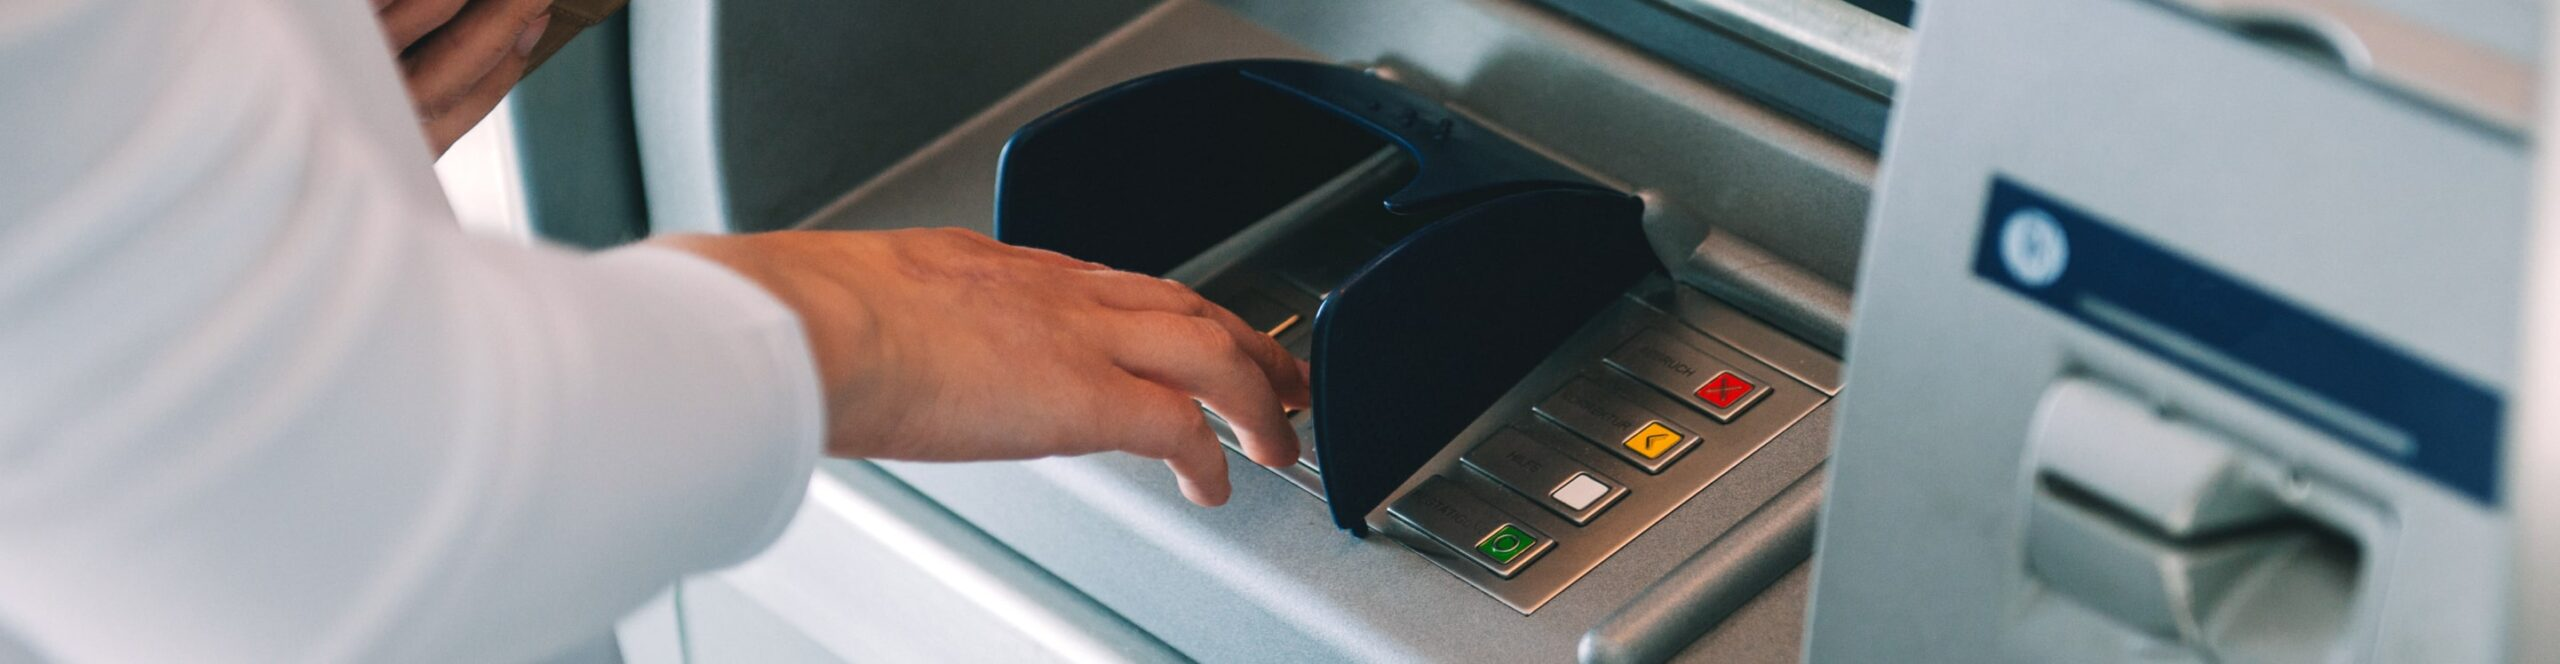 How we automated performance testing for an ATM control system preview